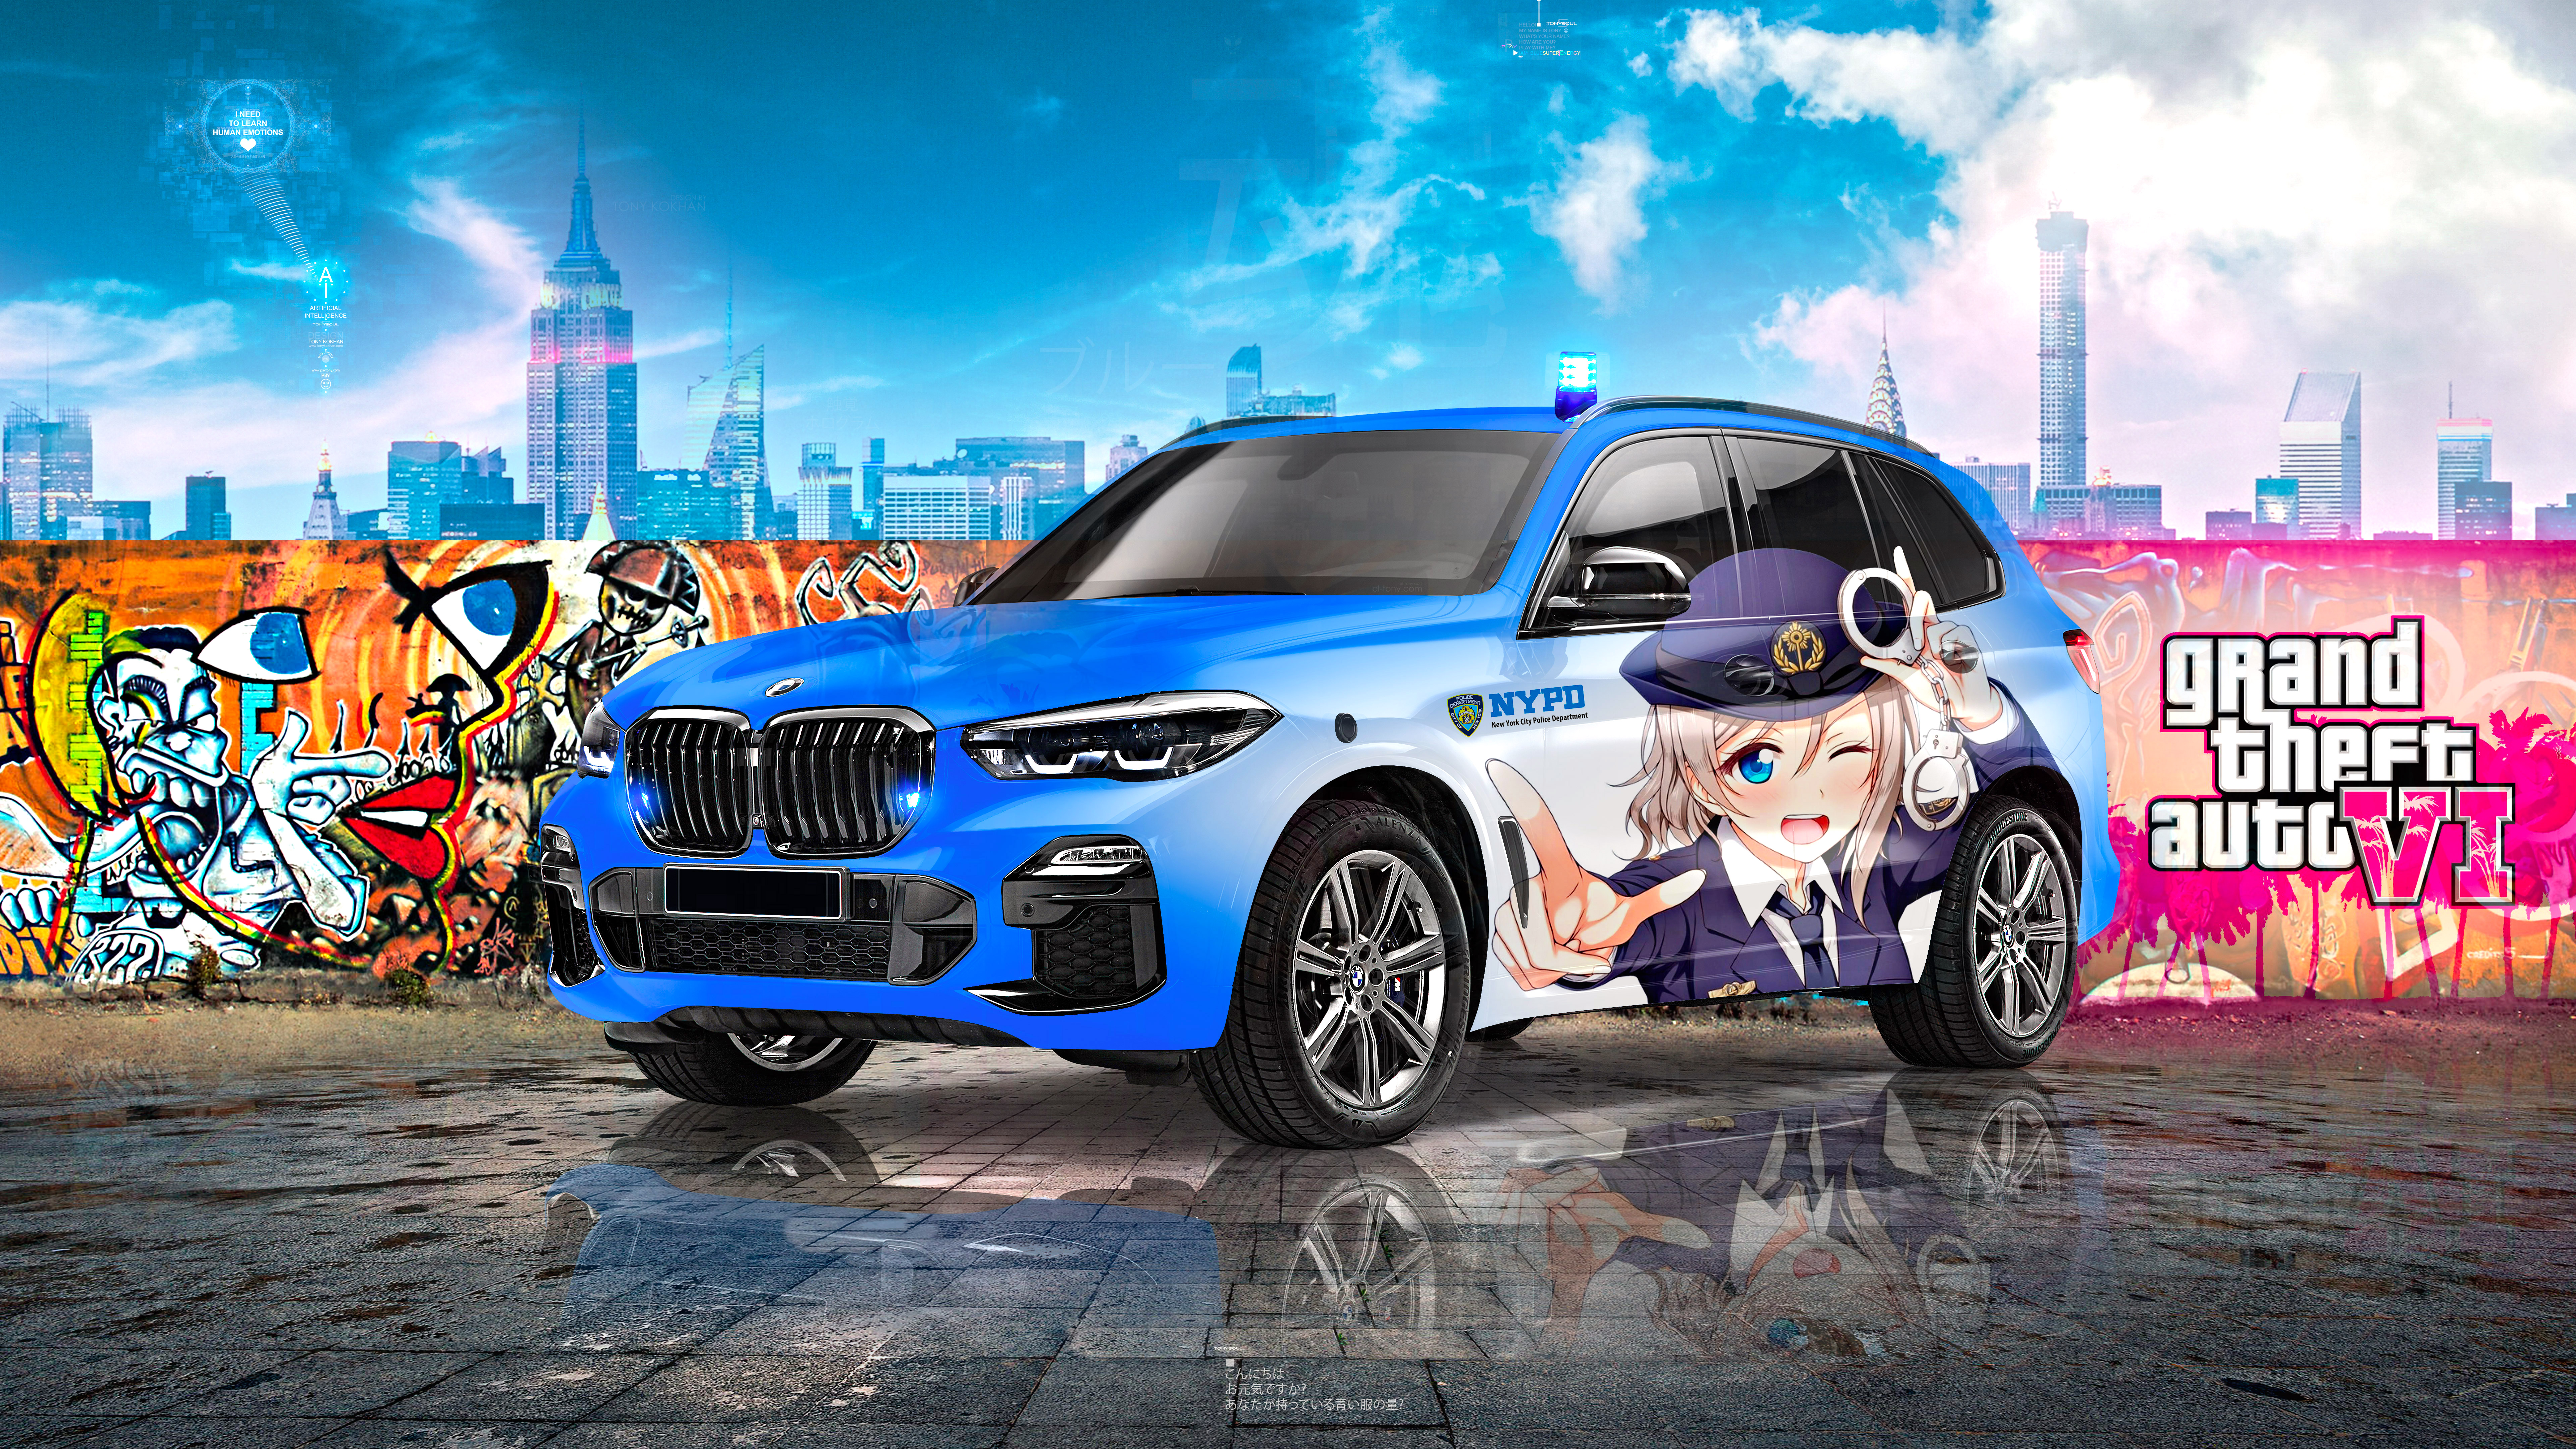 BMW-X5-Protection-VR6-Super-Anime-Girl-Police-NYPD-Crystal-Blue-Soul-GTAVI-New-York-Artificial-Intelligence-Art-Car-2021-Multicolors-8K-Wallpapers-by-Tony-Kokhan-www.el-tony.com-image